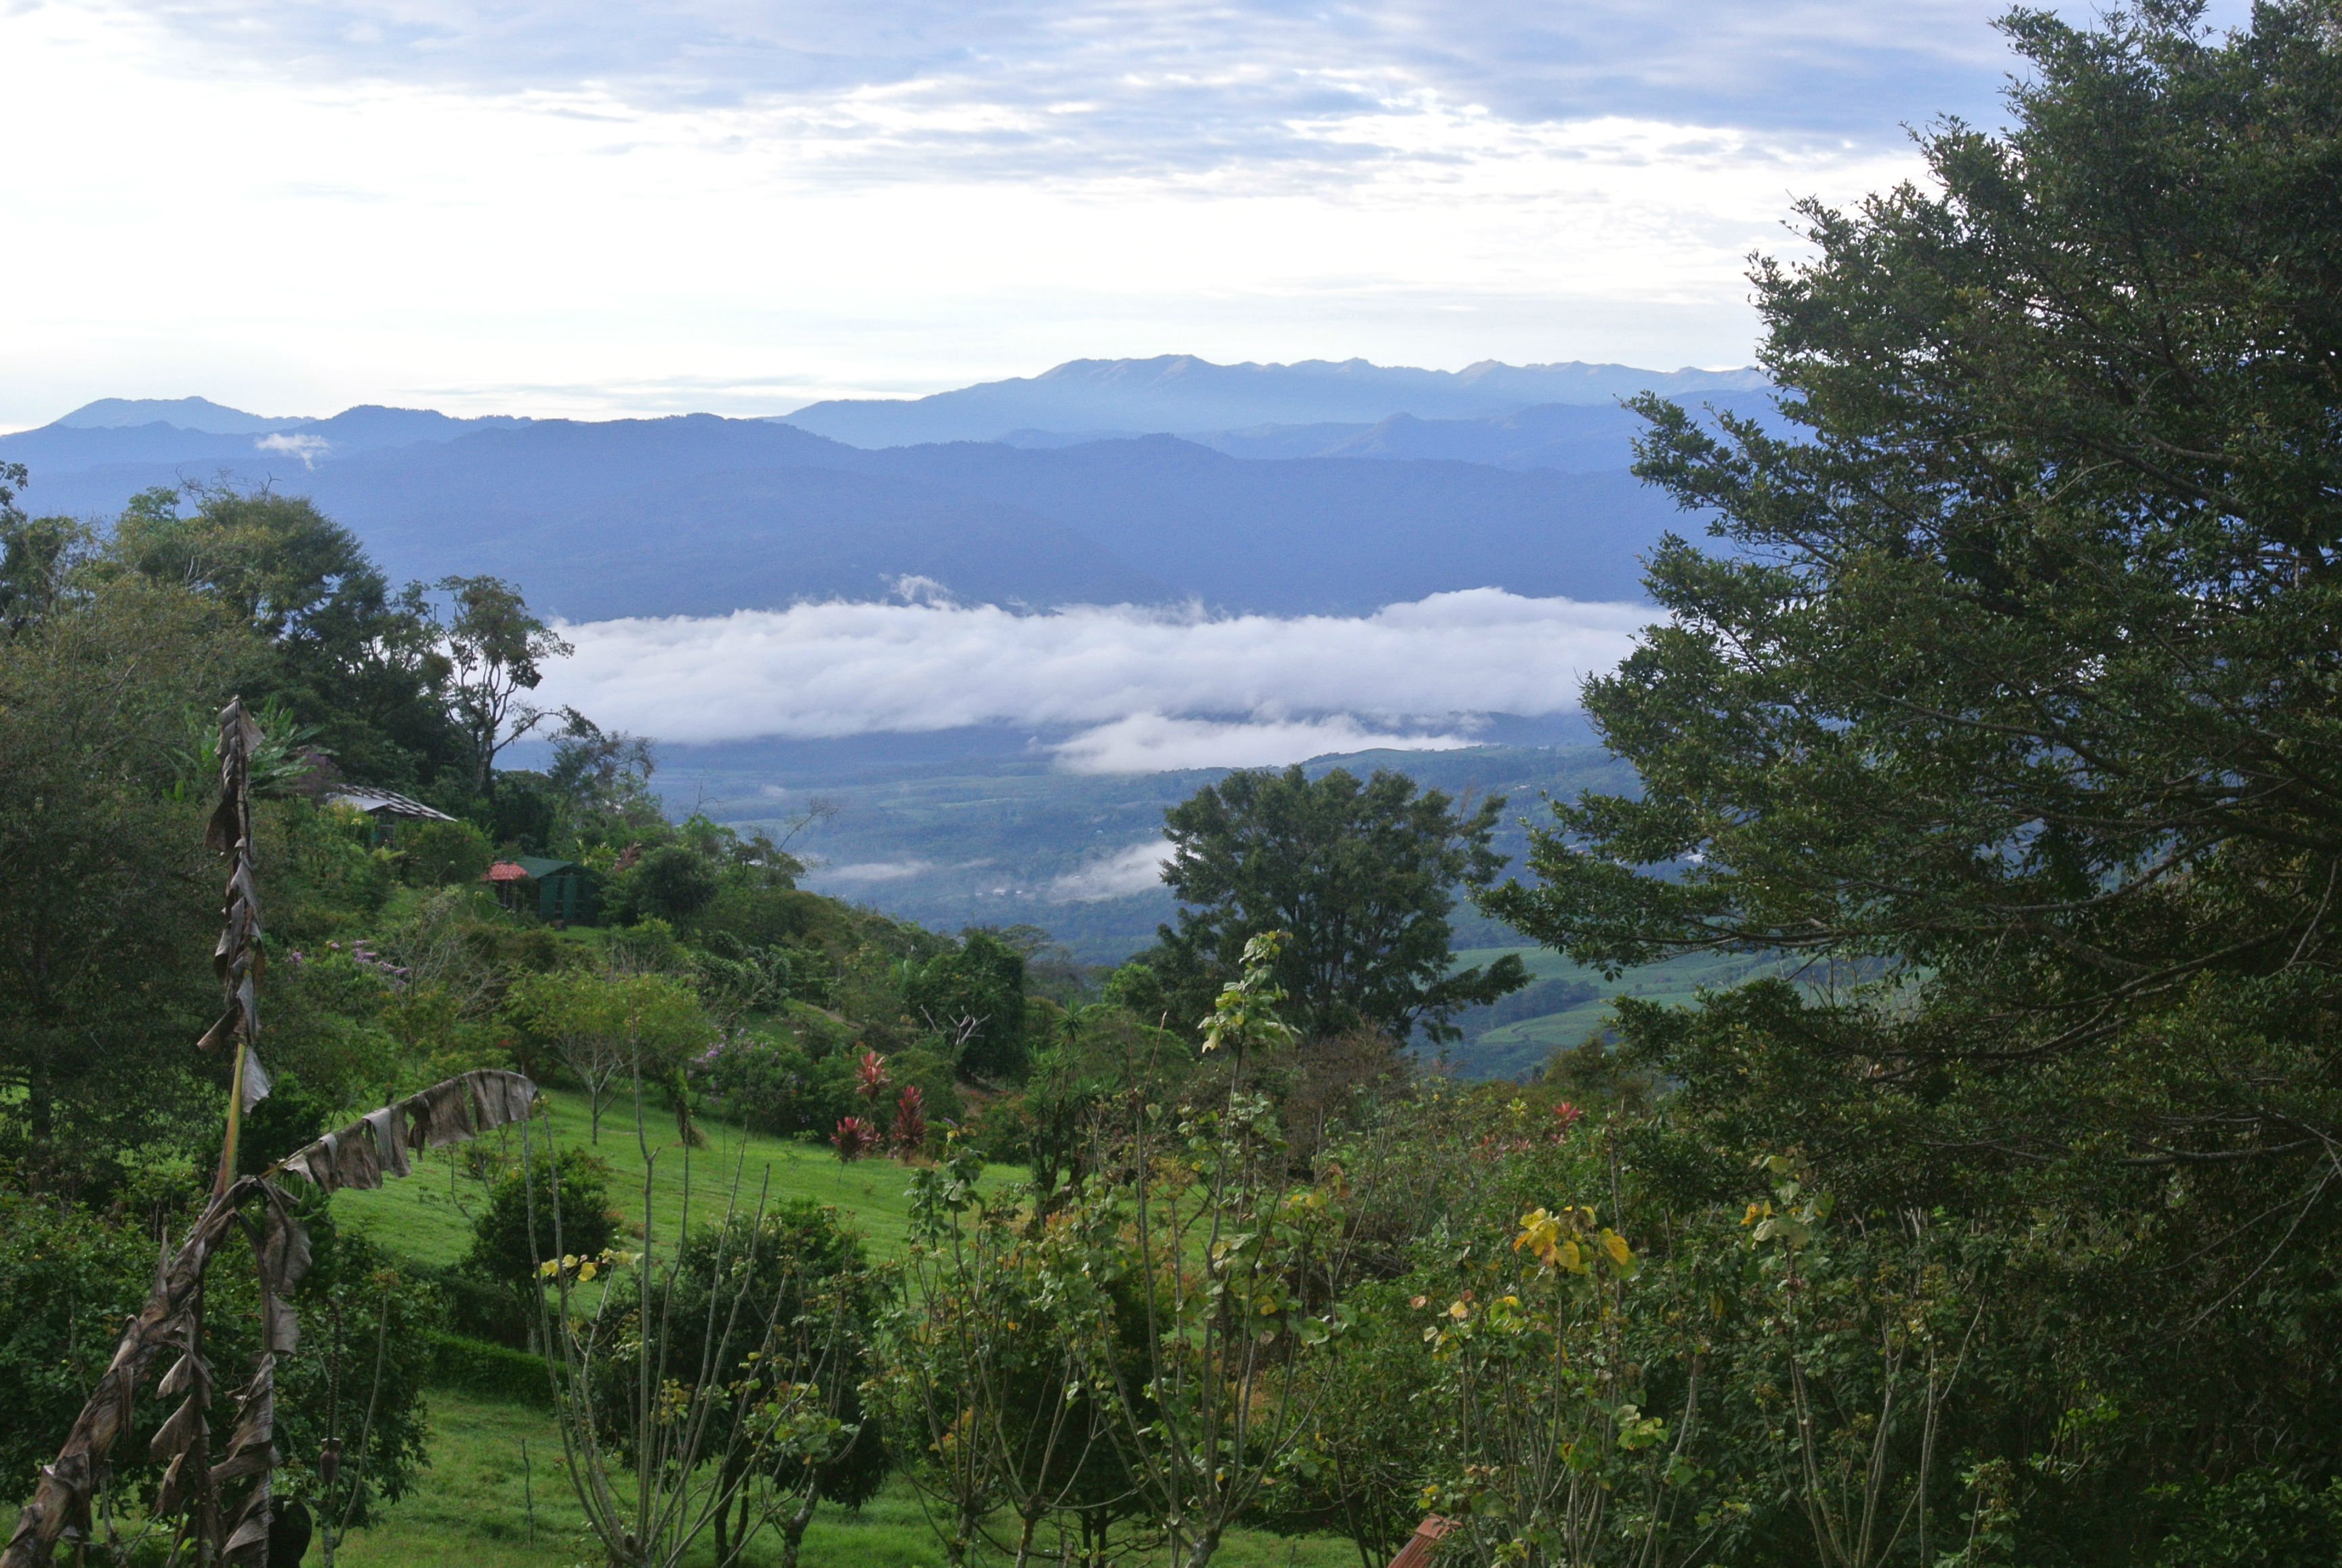 21 September: view of the Turrialba Valley and Chirripo mountain (5.45 am)